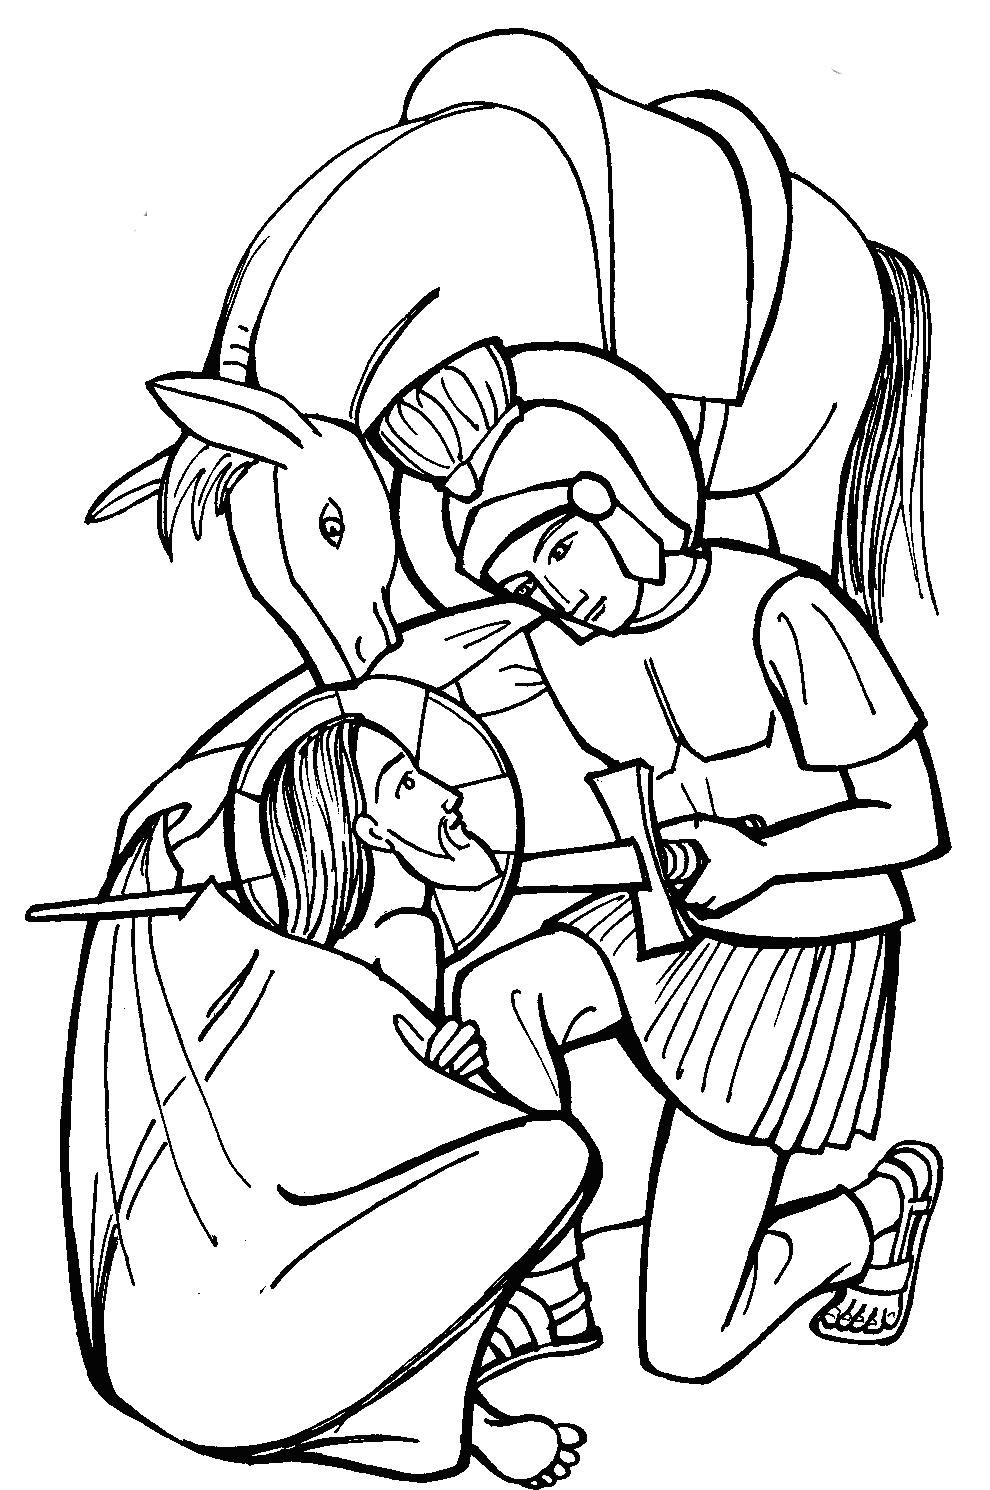 St Martin of Tours Catholic Coloring Page Feast day Martinmas is November